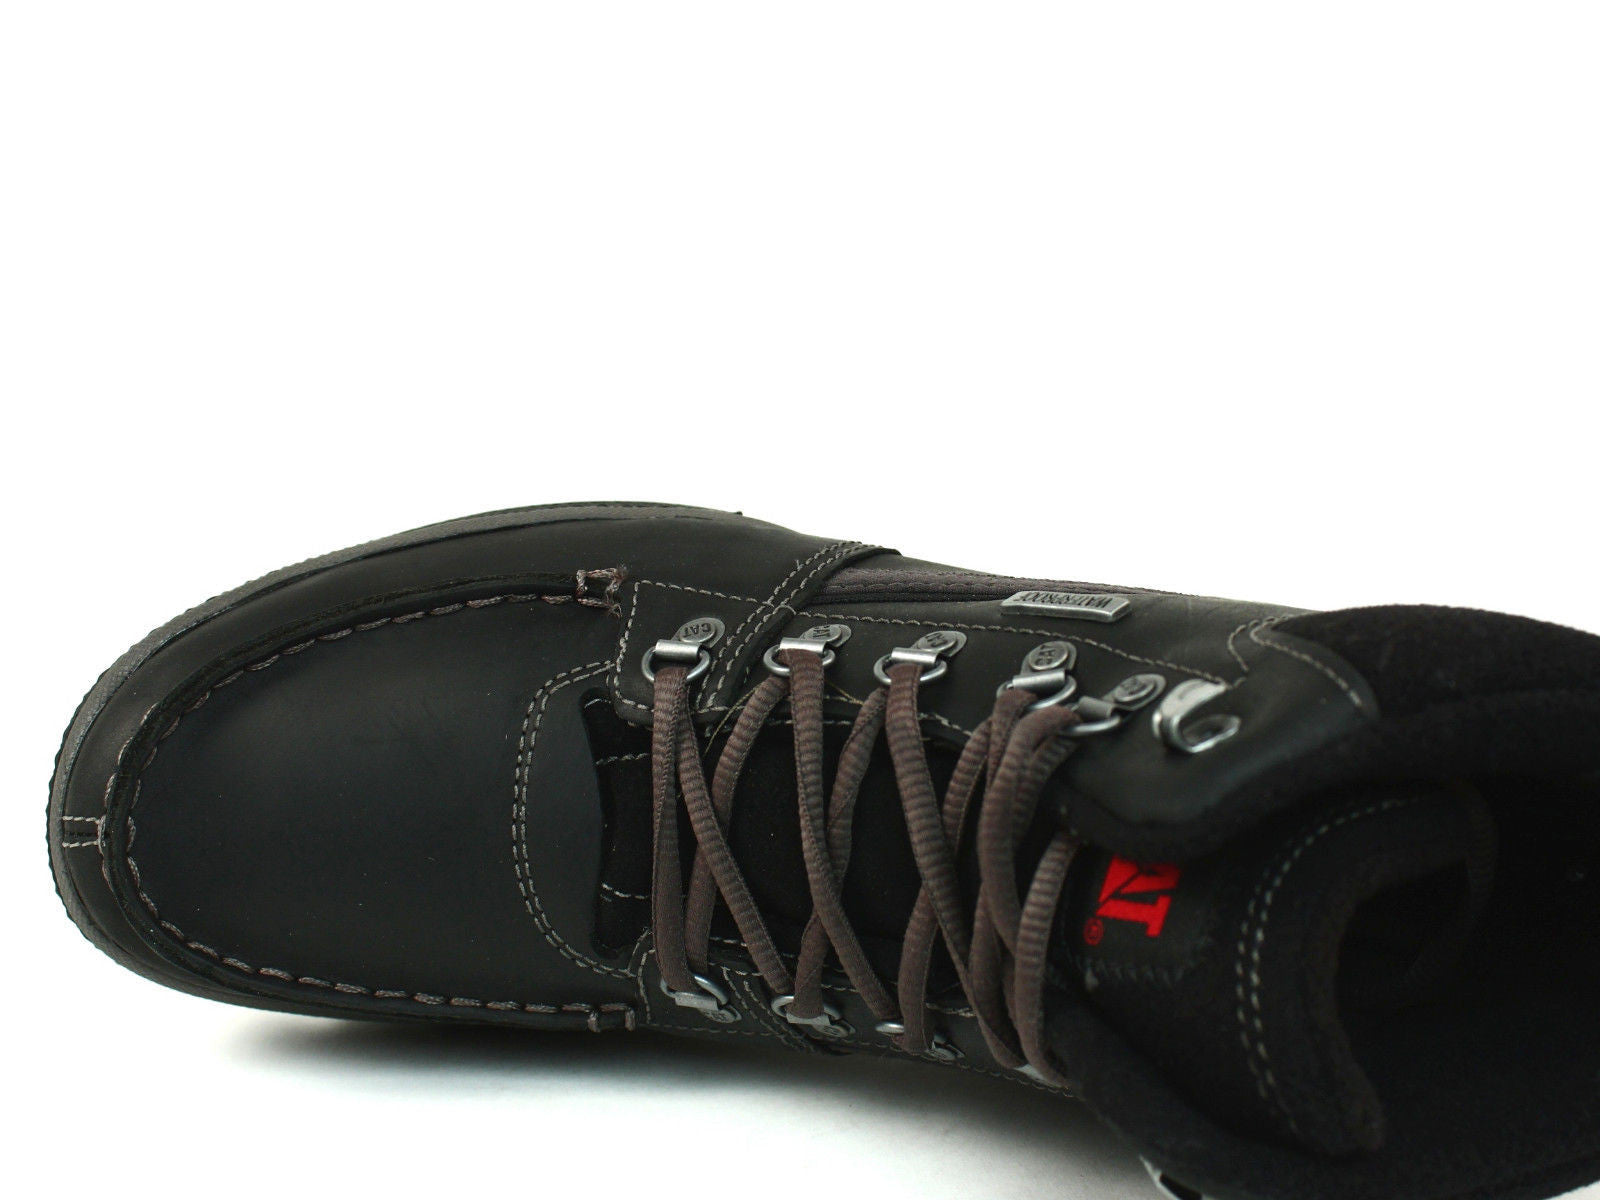 Caterpillar TRENT Waterproof Mid Cut Mens Casual Work Hiking Black Leather Boots